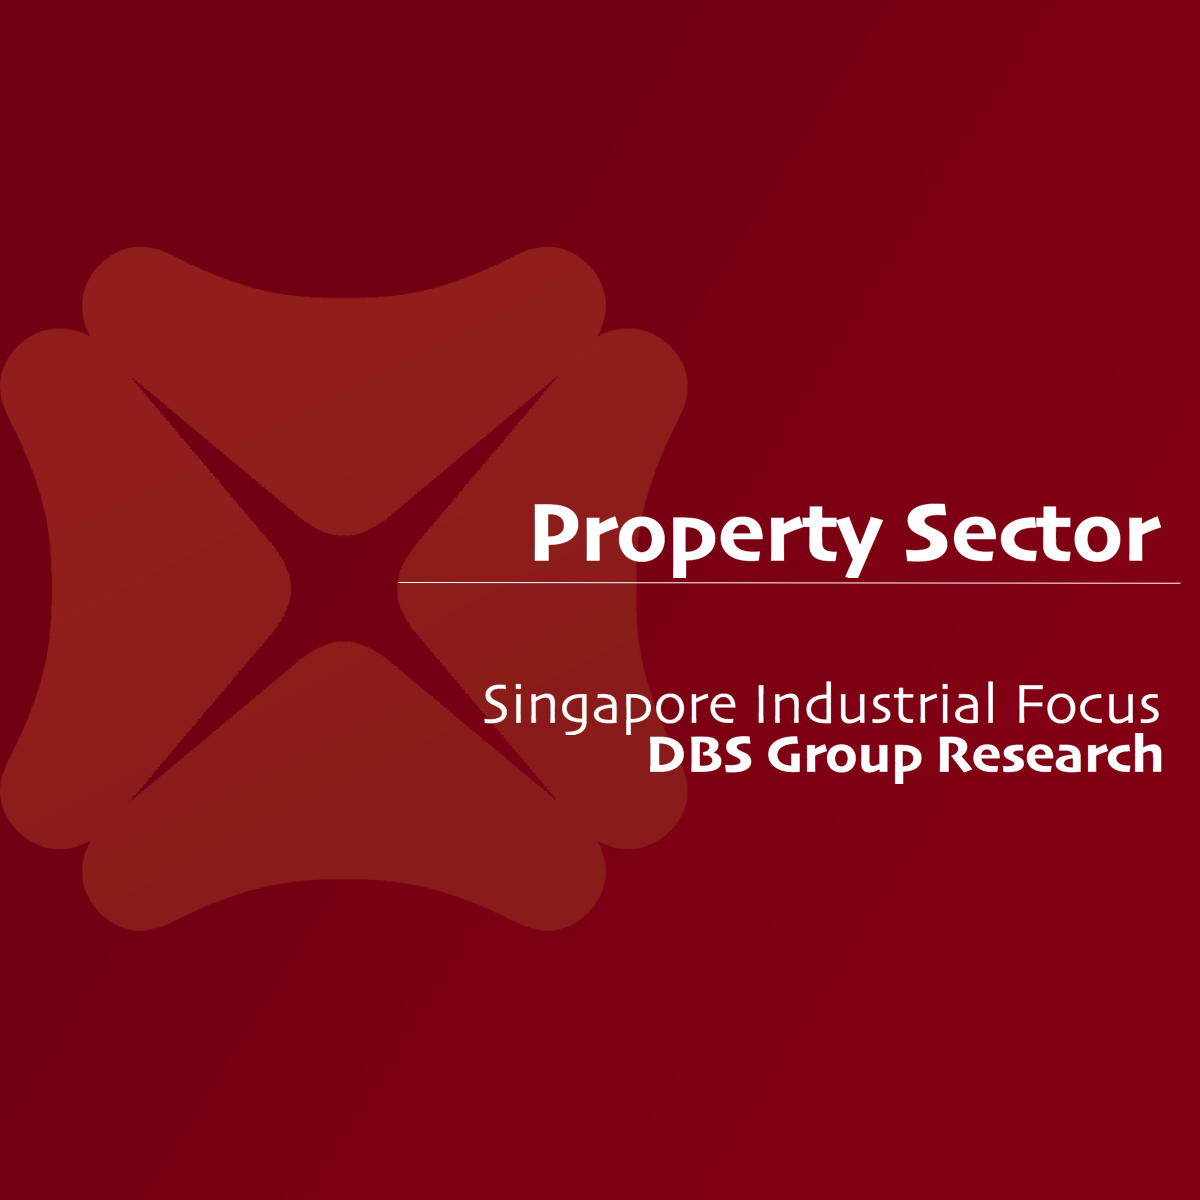 Singapore Property/Hospitality - DBS Vickers 2018-04-16: Setting A High Bar